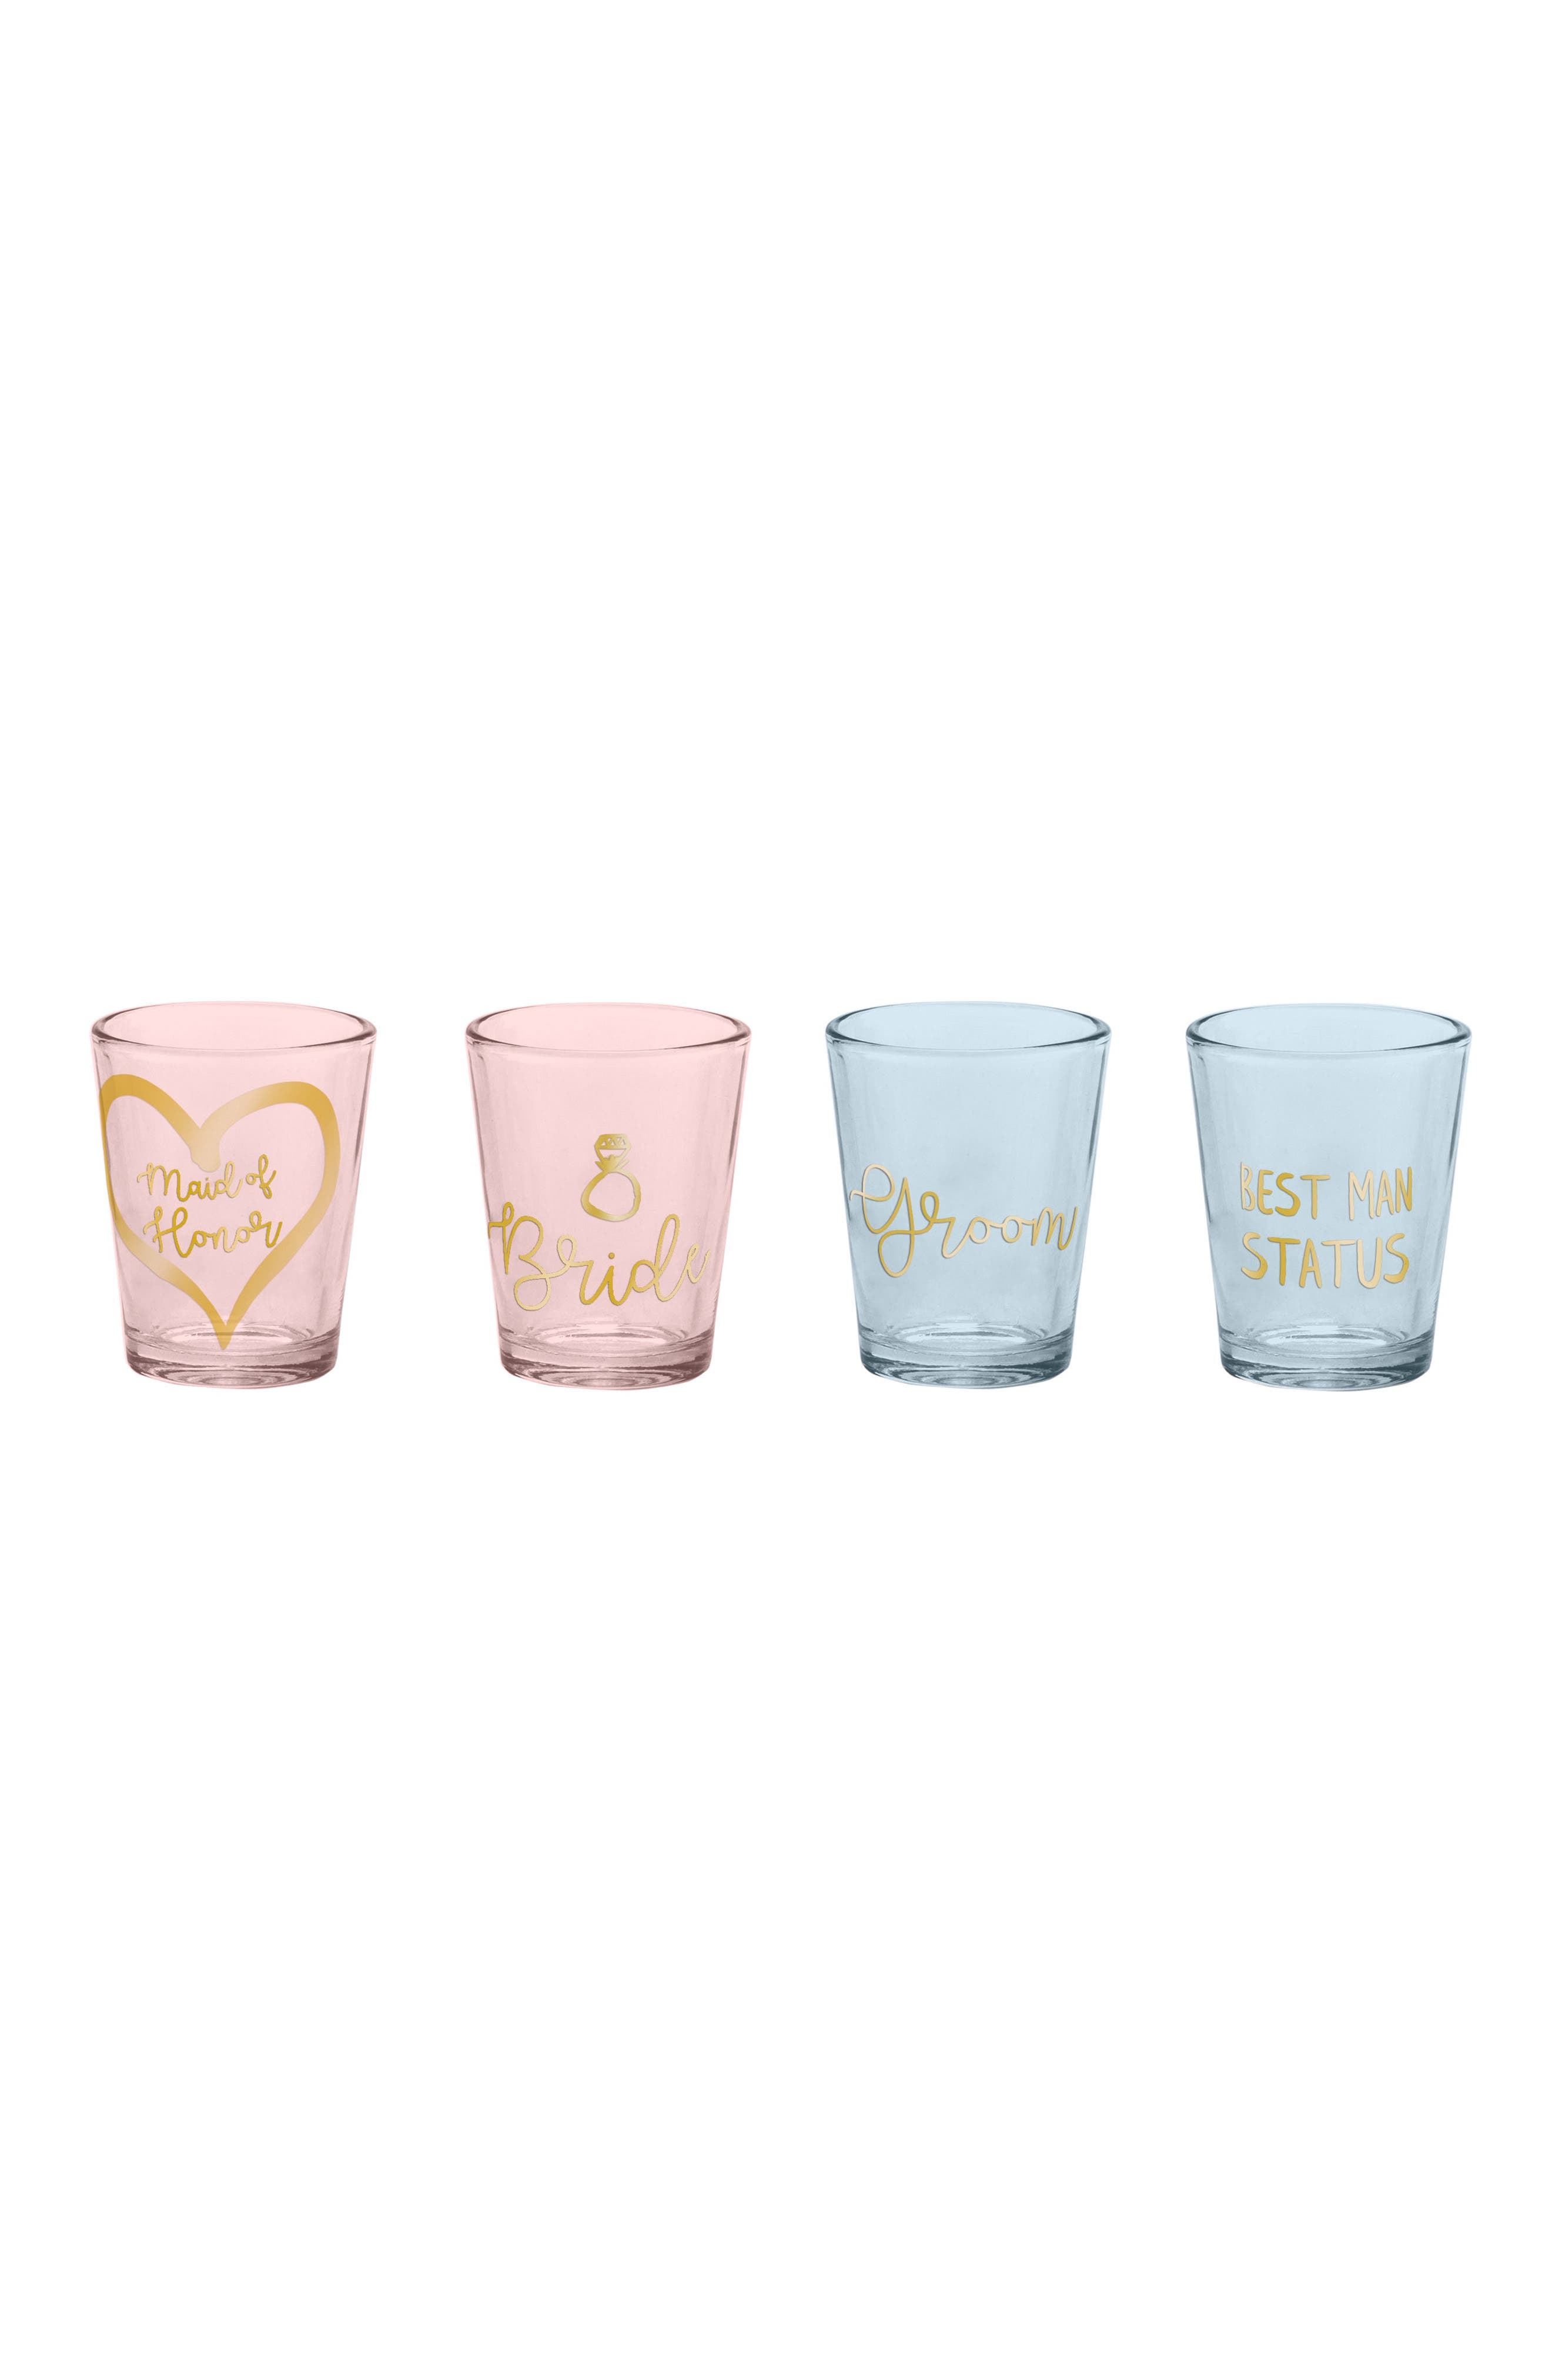 Wedding Party Set of 4 Shot Glasses,                             Main thumbnail 1, color,                             Pink And Blue